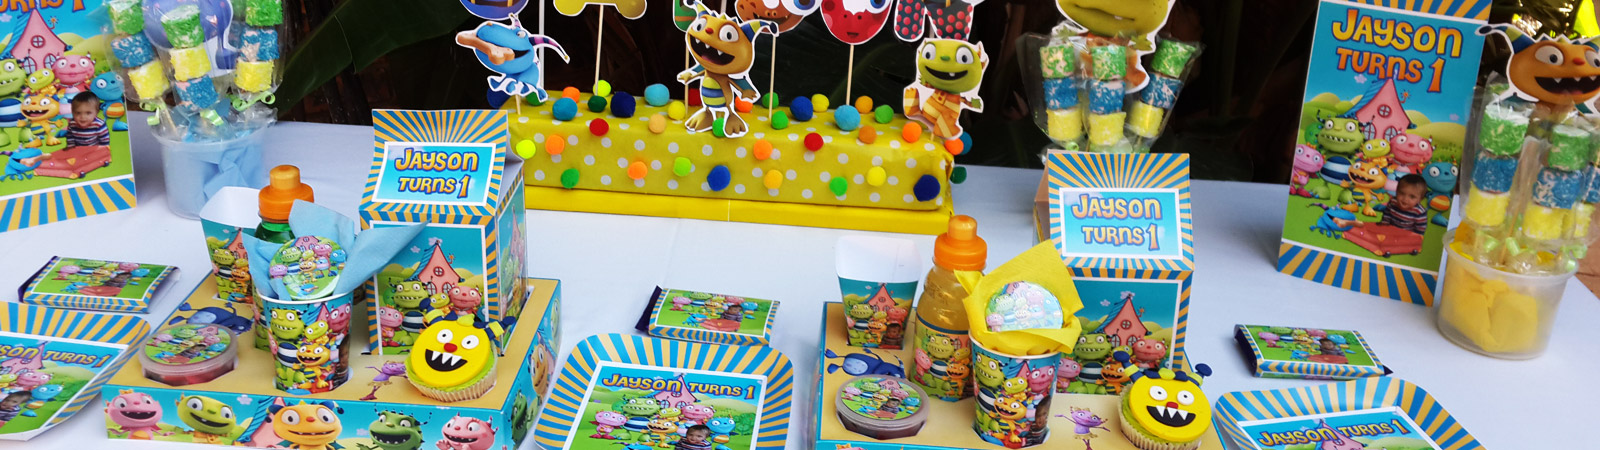 Kiddies Theme Parties not only makes personalised party decor, we can also do the entire party setup for you.